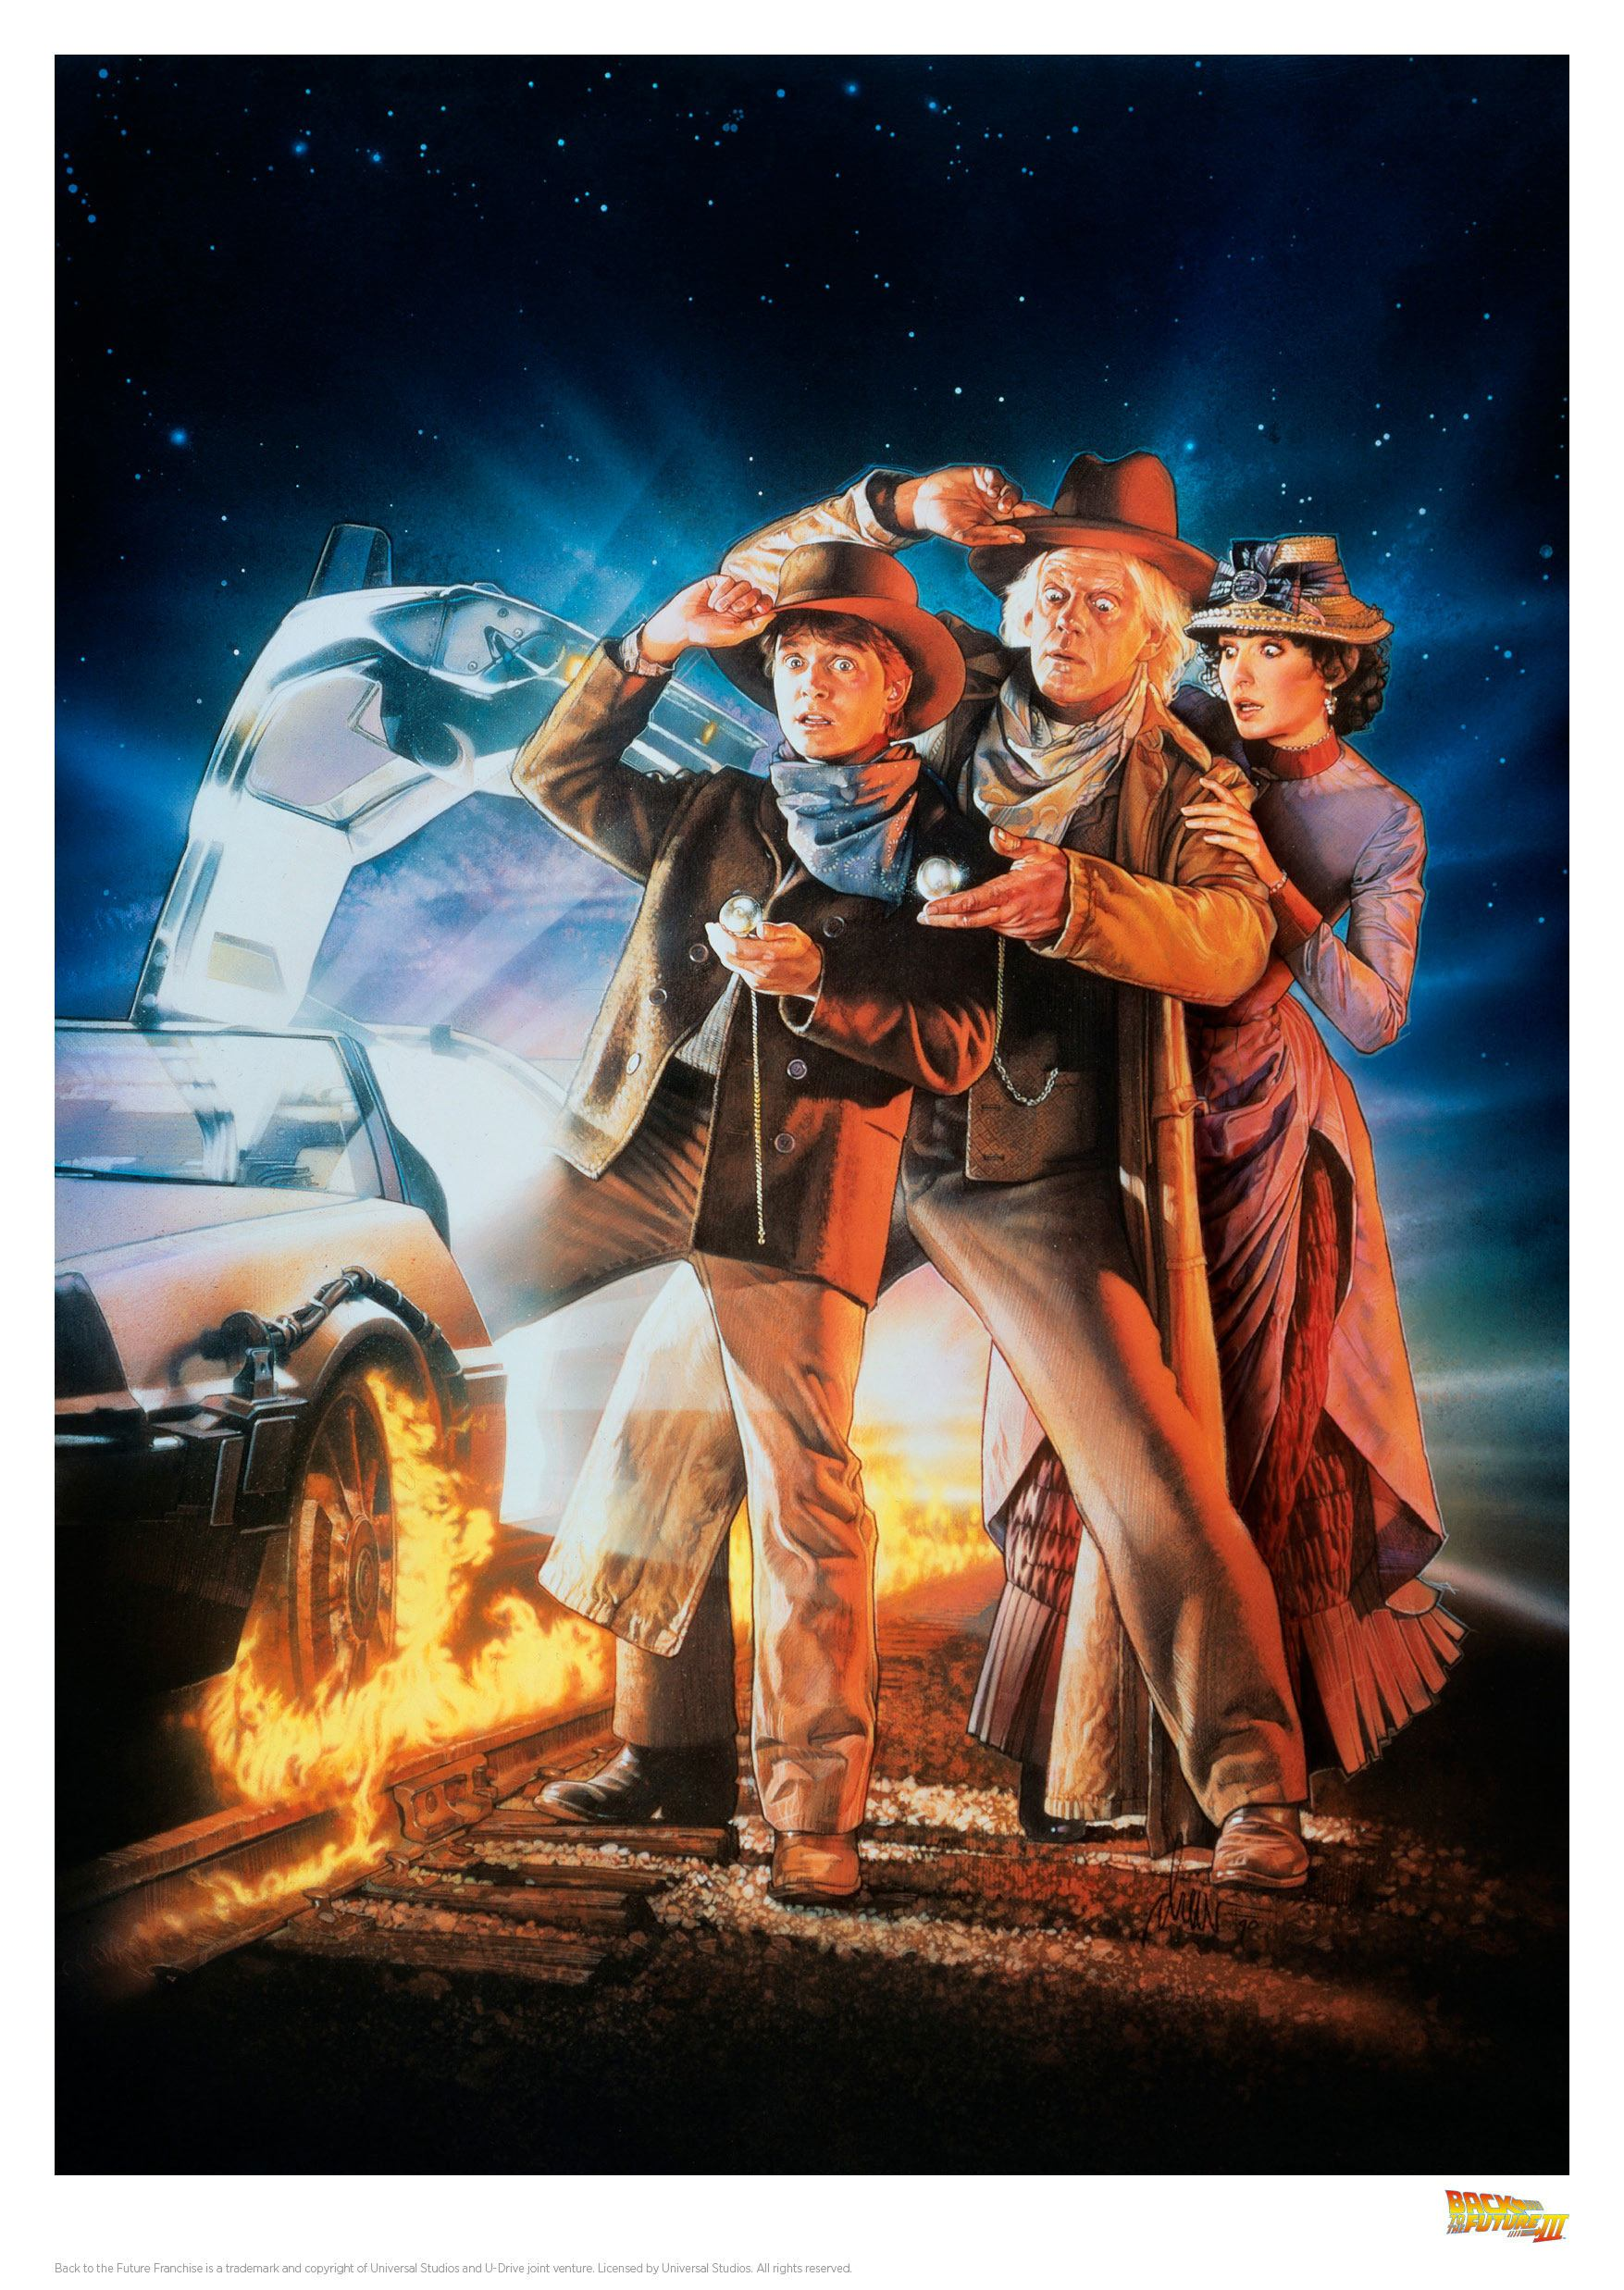 Back to the Future III Art Print Cover 42 x 30 cm